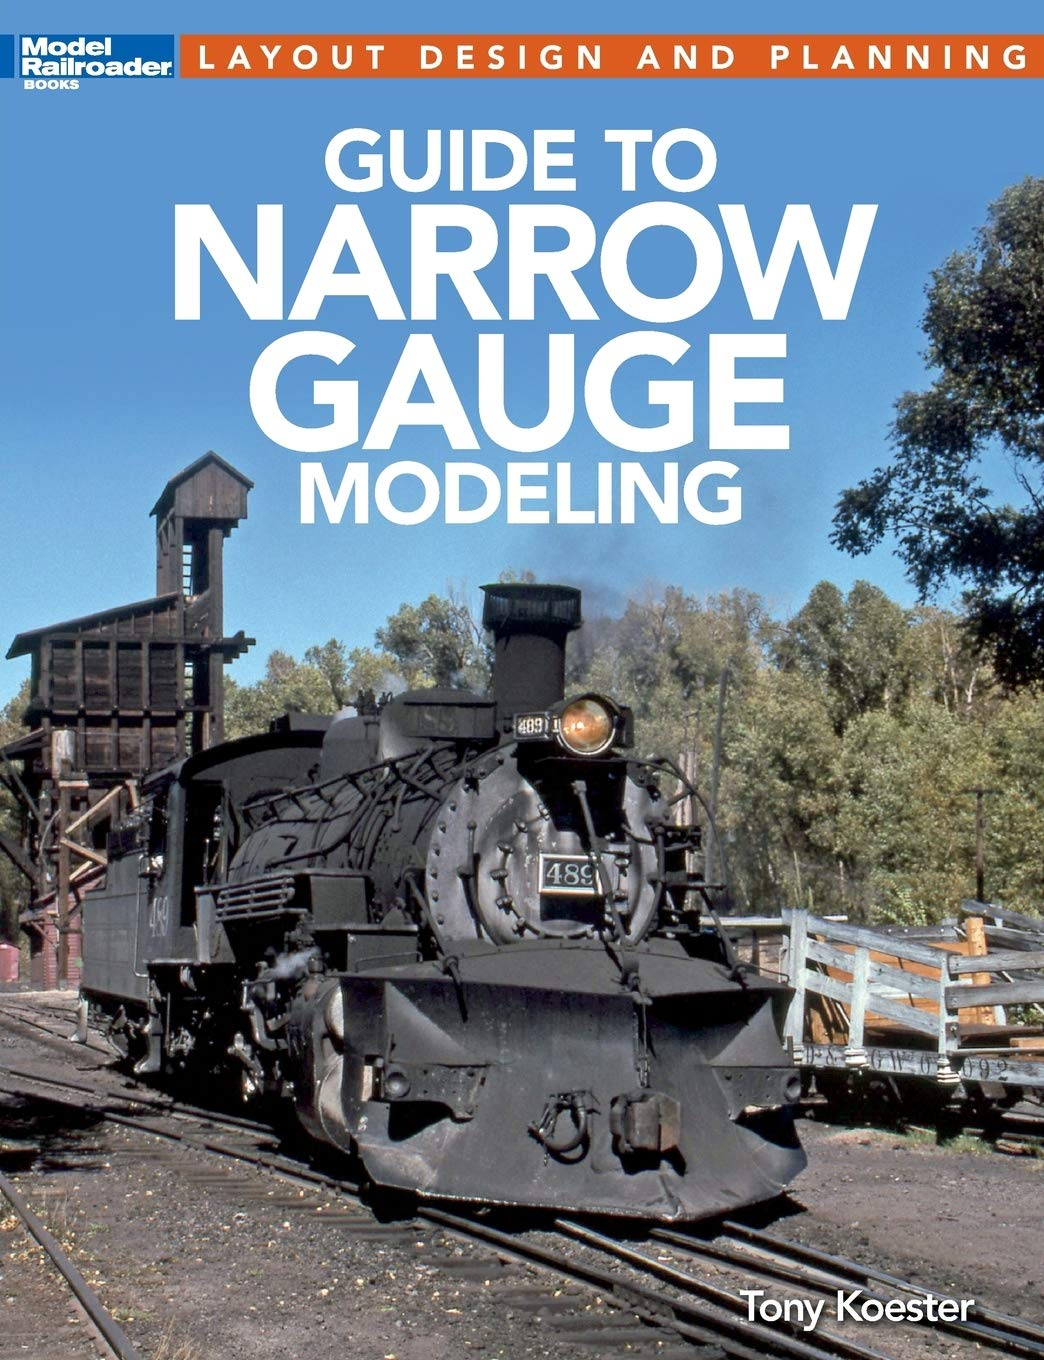 Guide to Narrow Gauge Modeling (Layout Design and Planning) #12490 Book Colorado